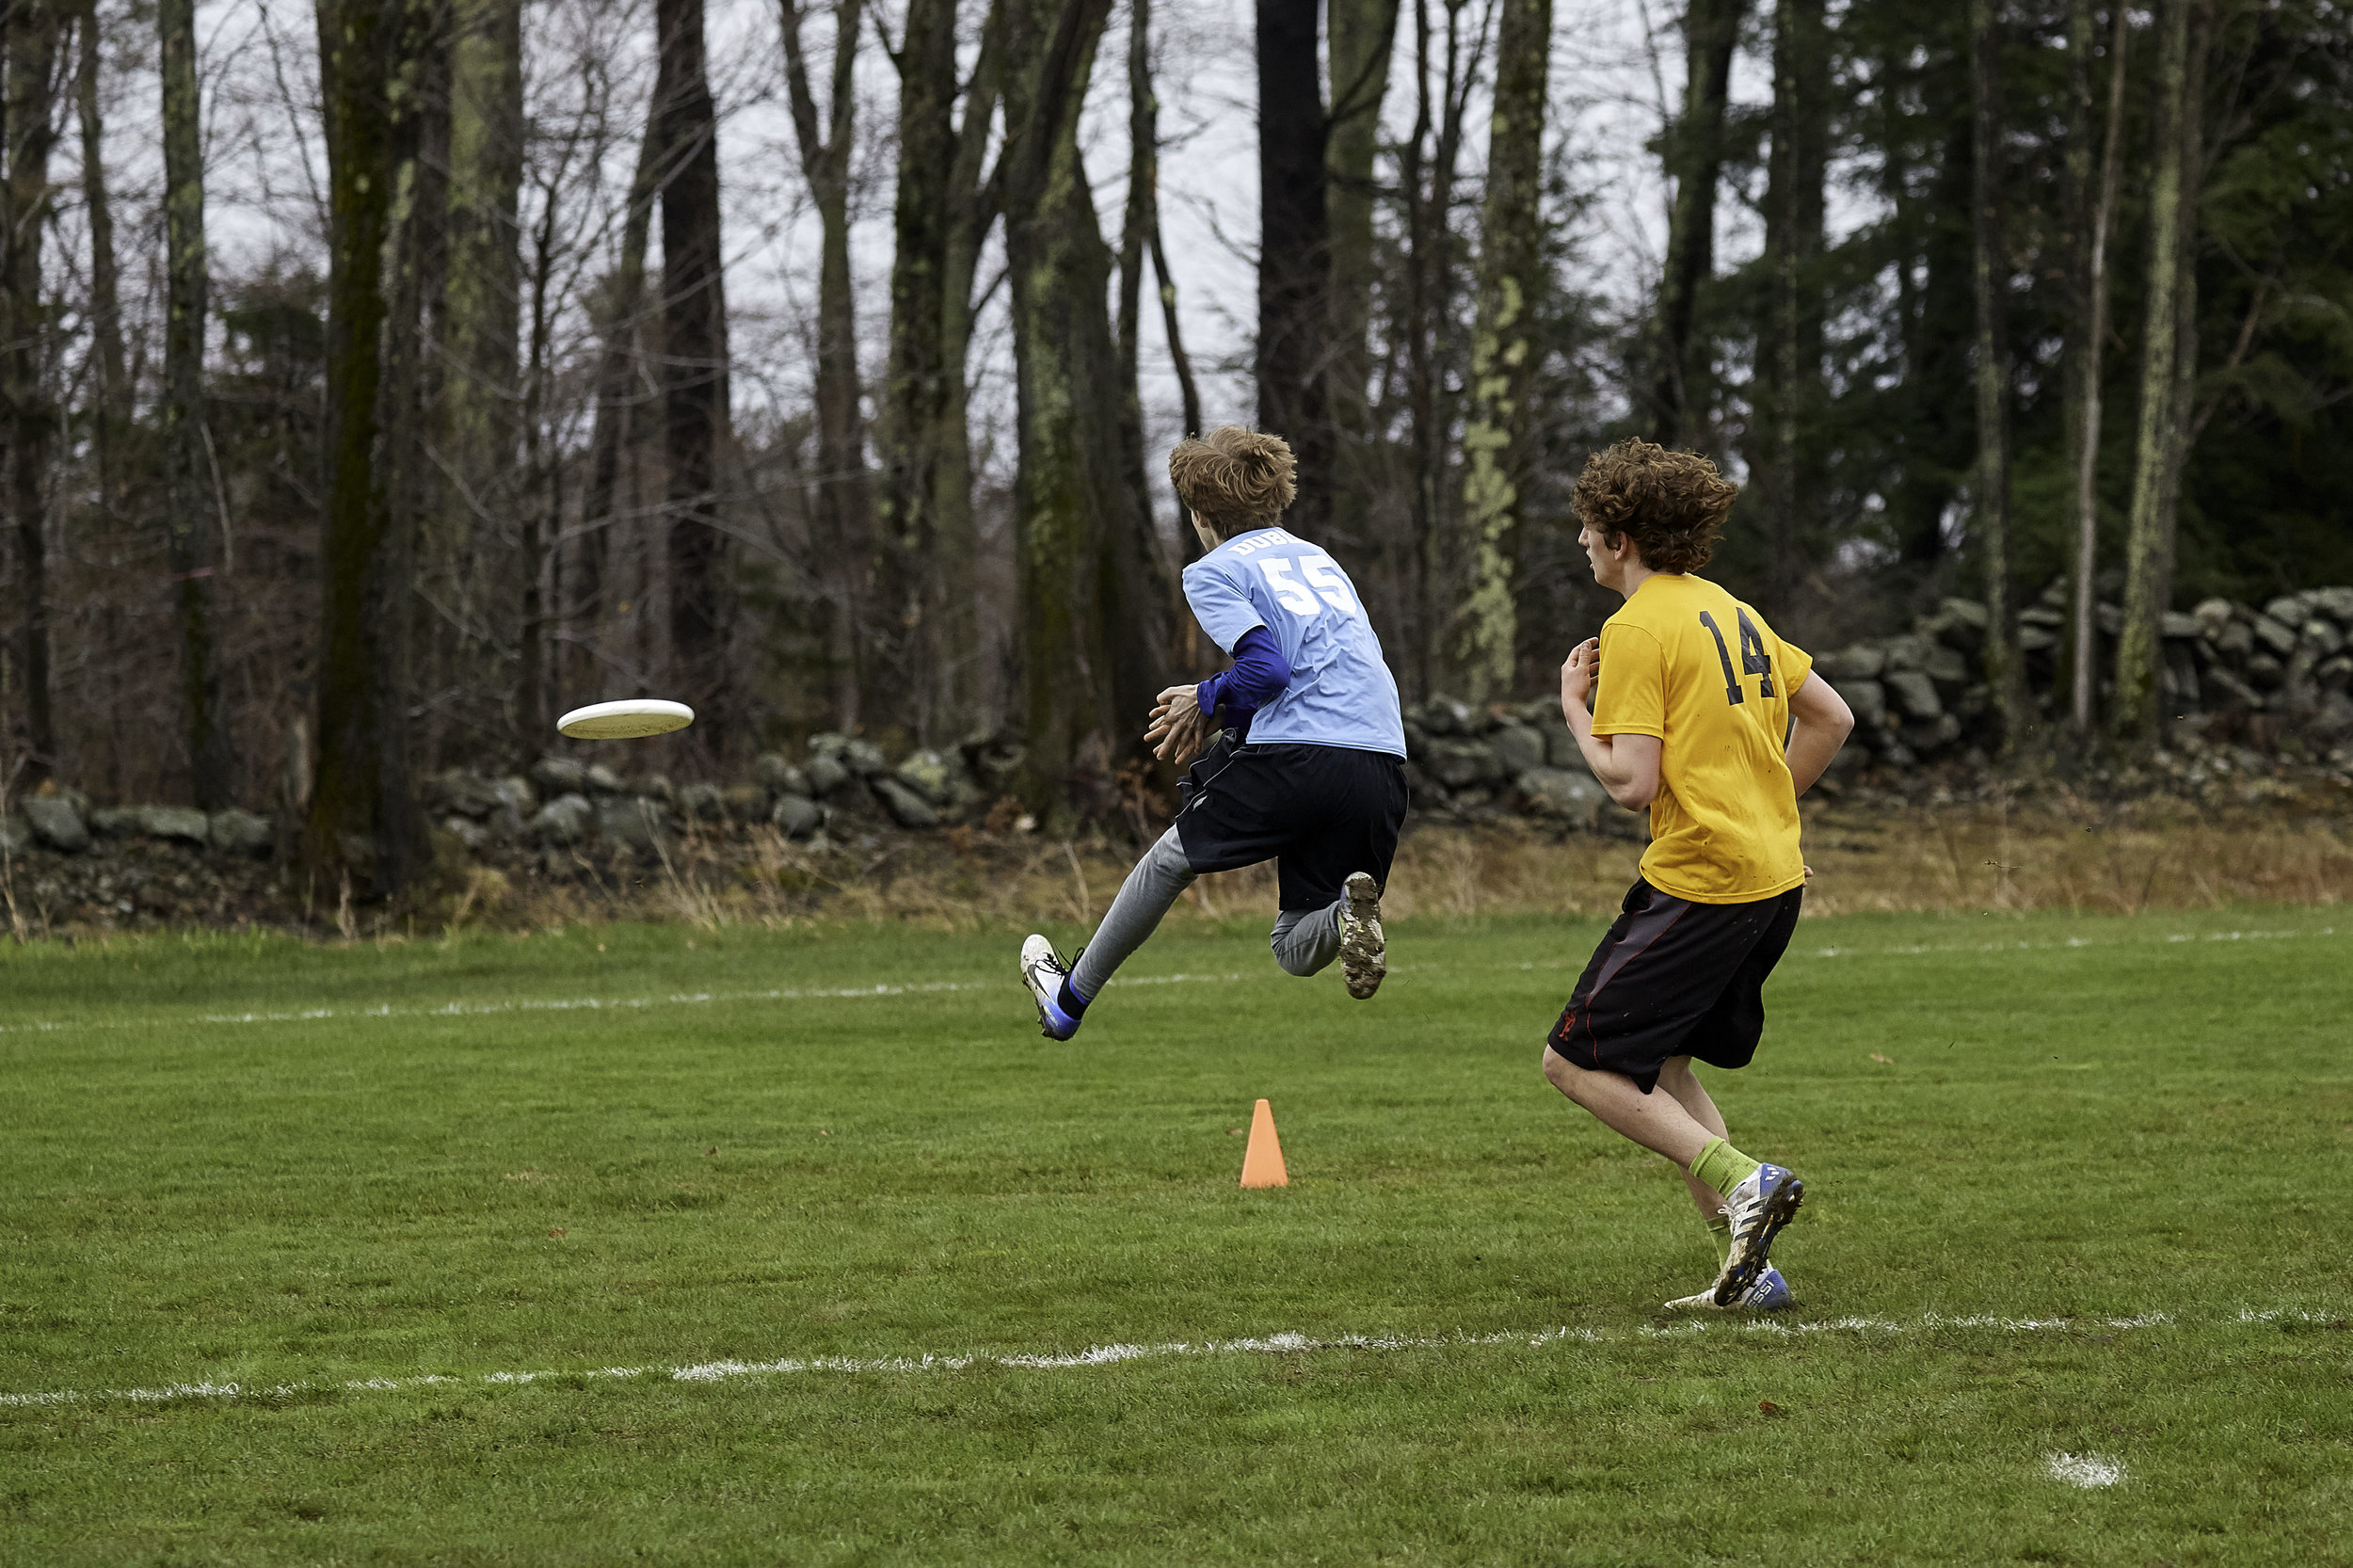 Ultimate Frisbee vs. Eagle Hill School - May 3, 2019 - 188407.jpg